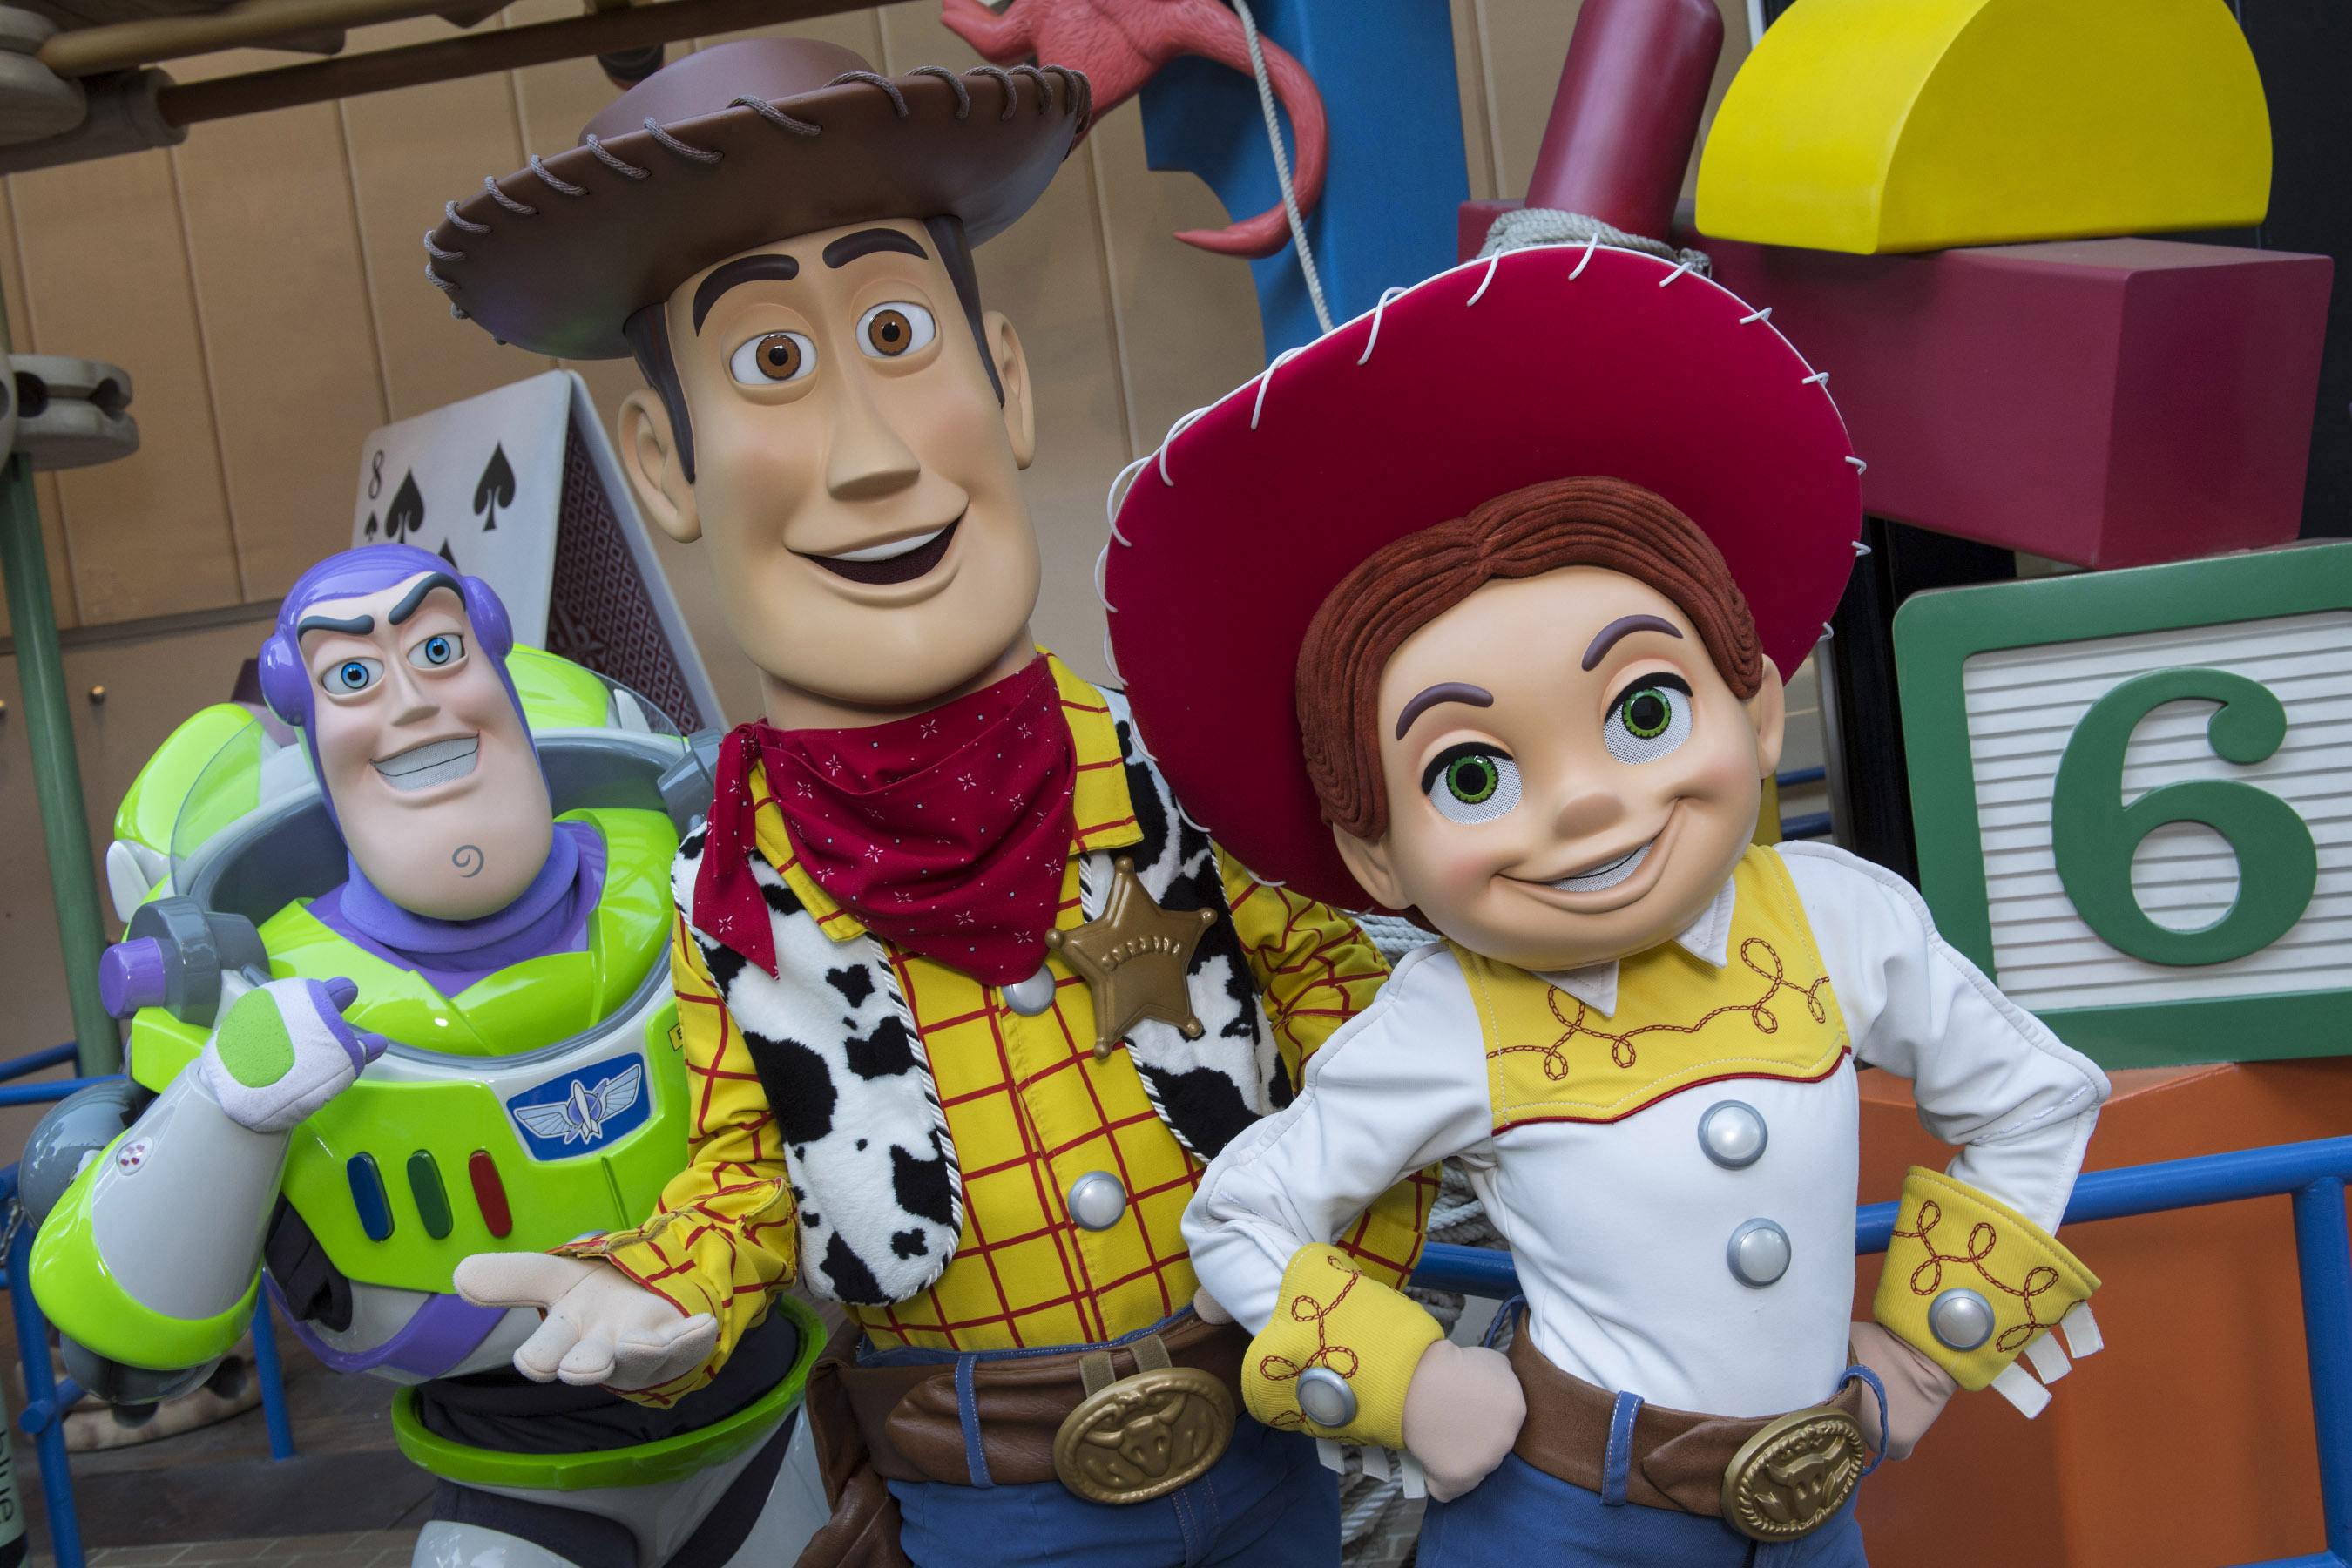 """Slide 1 of 15: BELOVED CHARACTERS COMING TO TOY STORY LAND AT WALT DISNEY WORLD RESORT (LAKE BUENA VISTA, Fla.) – Buzz Lightyear, Sheriff Woody and Jessie the Yodeling Cowgirl from Disney•Pixar's """"Toy Story"""" films will interact with guests in the new Toy Story Land when it opens June 30 at Disney's Hollywood Studios in Lake Buena Vista, Fla. This new 11-acre land will transport Walt Disney World guests into the adventurous outdoors of Andy's backyard where they will feel like they have shrunk to the size of a toy. (David Roark, photographer)"""